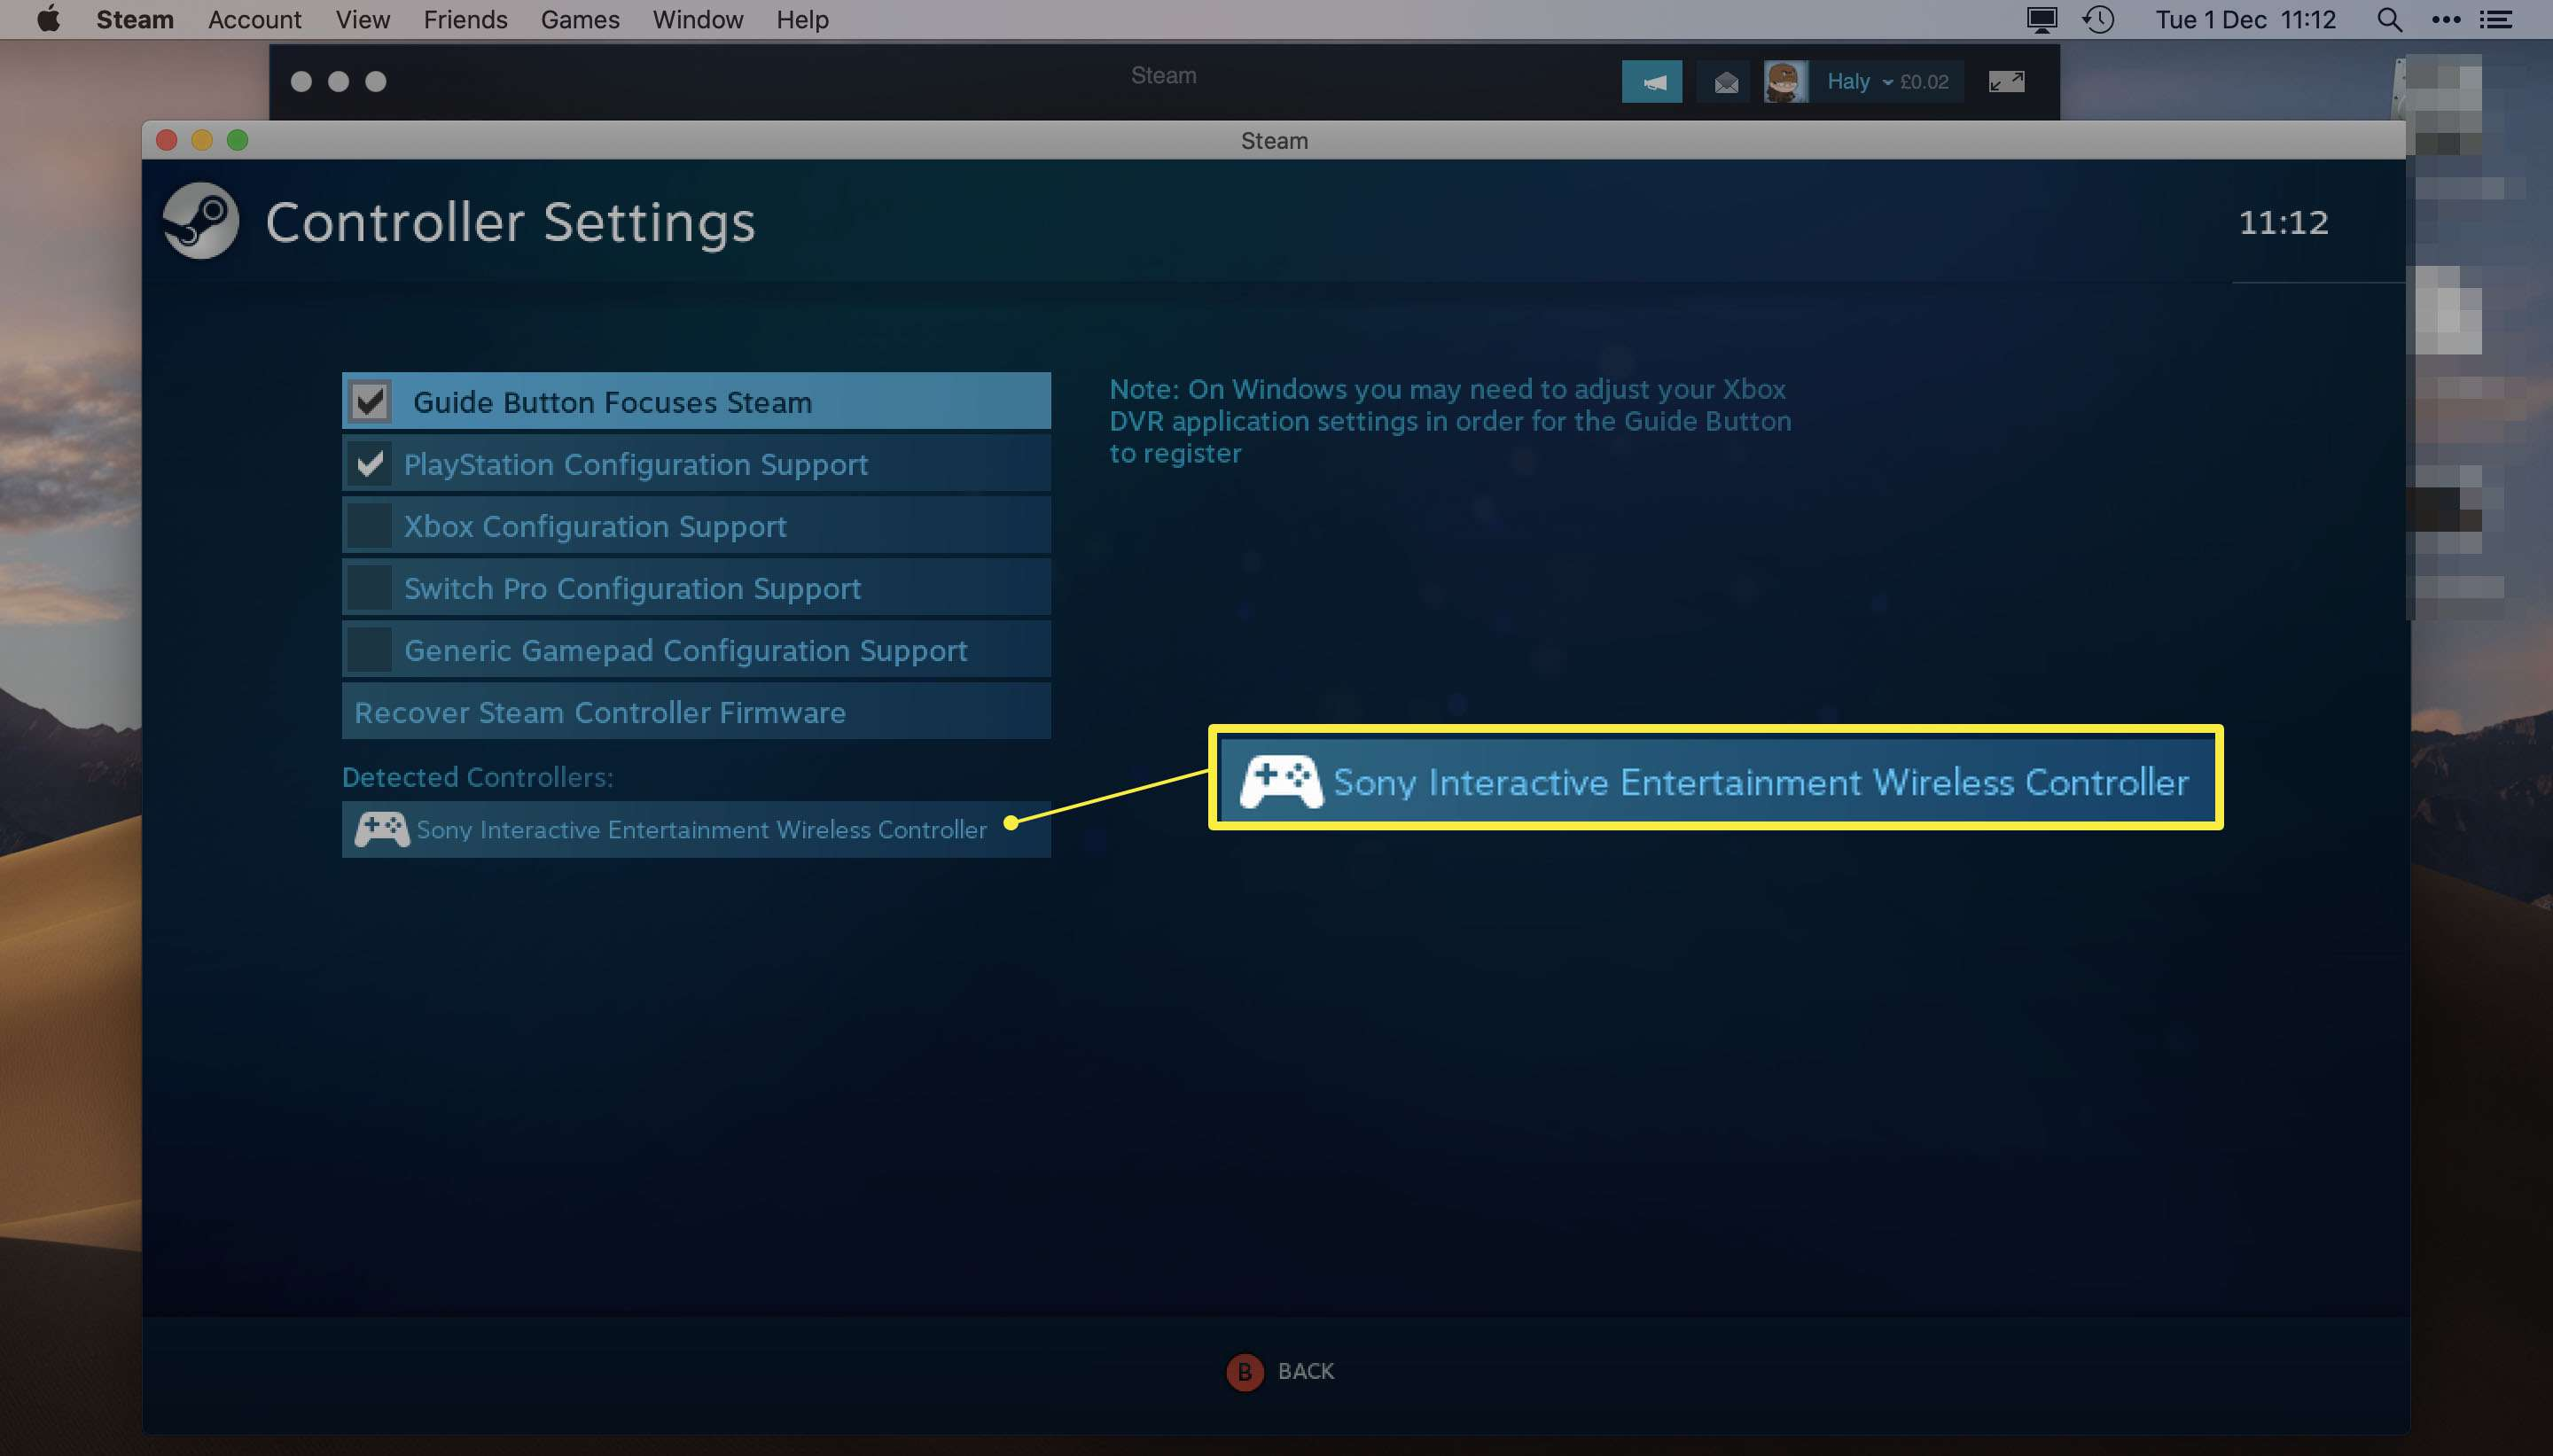 Steam app with Controller Settings open and Sony Wireless Controller highlighted